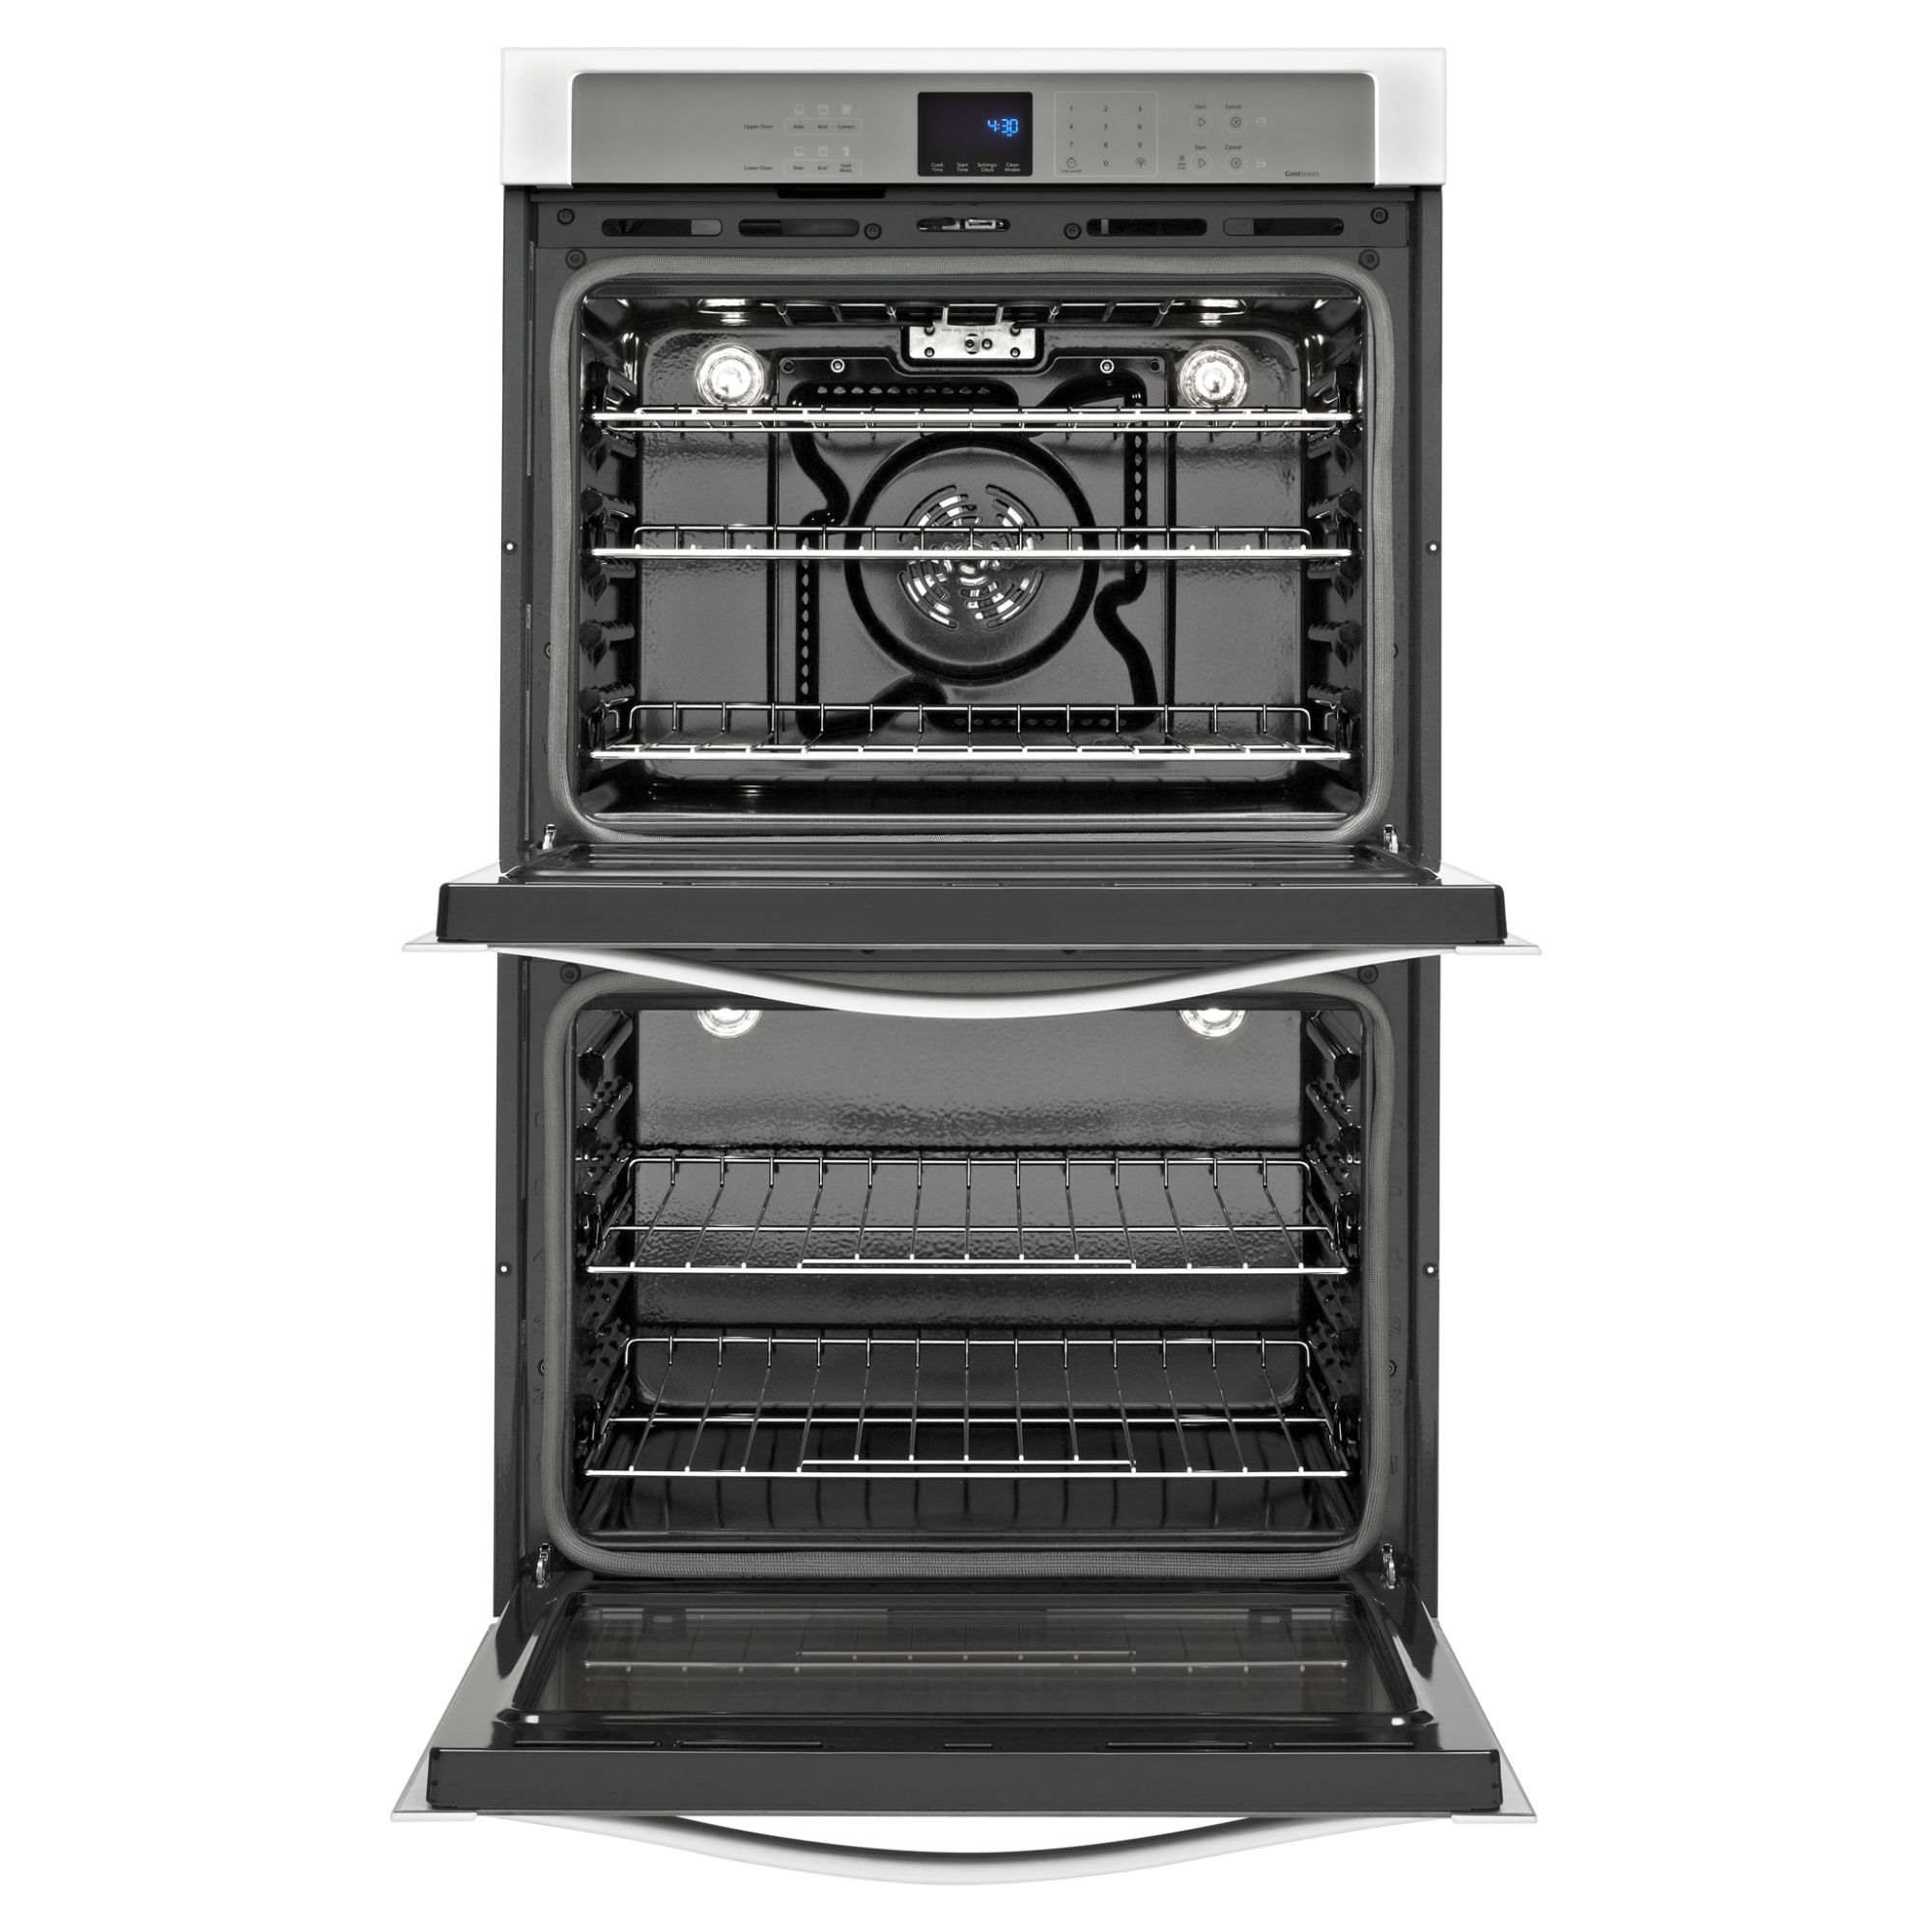 "Whirlpool Gold WOD93EC0AH 30"" Electric Double Wall Oven w/ TimeSavor™ Ultra True Convection - White Ice"